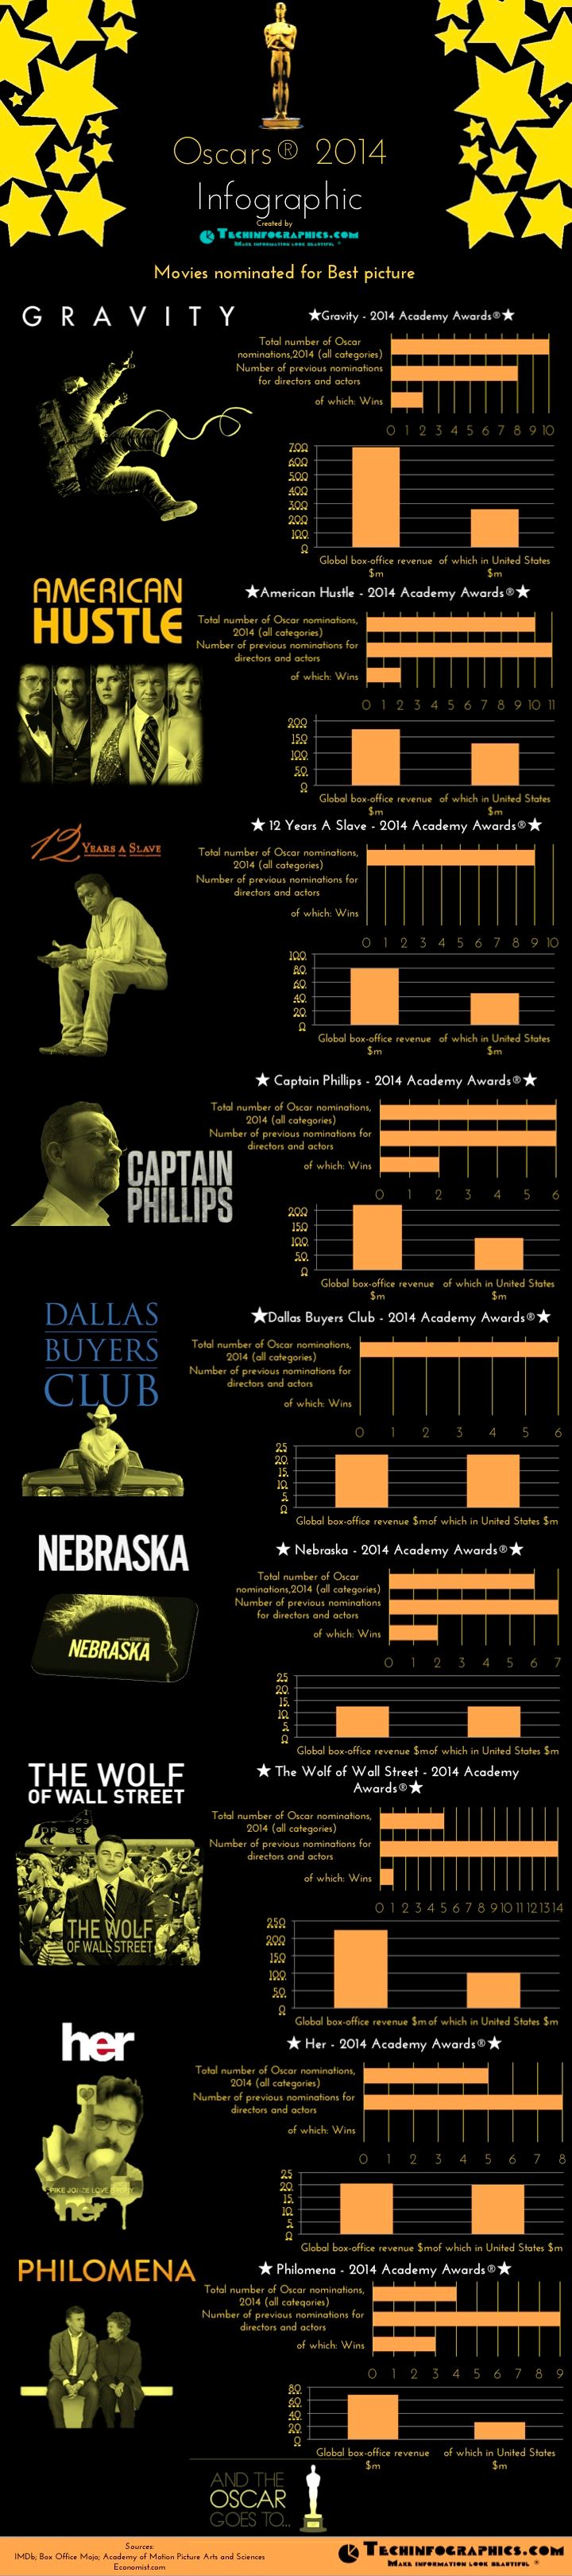 Oscars 2014 - Movies Nominated for Best picture | #Infographic repinned by @Piktochart